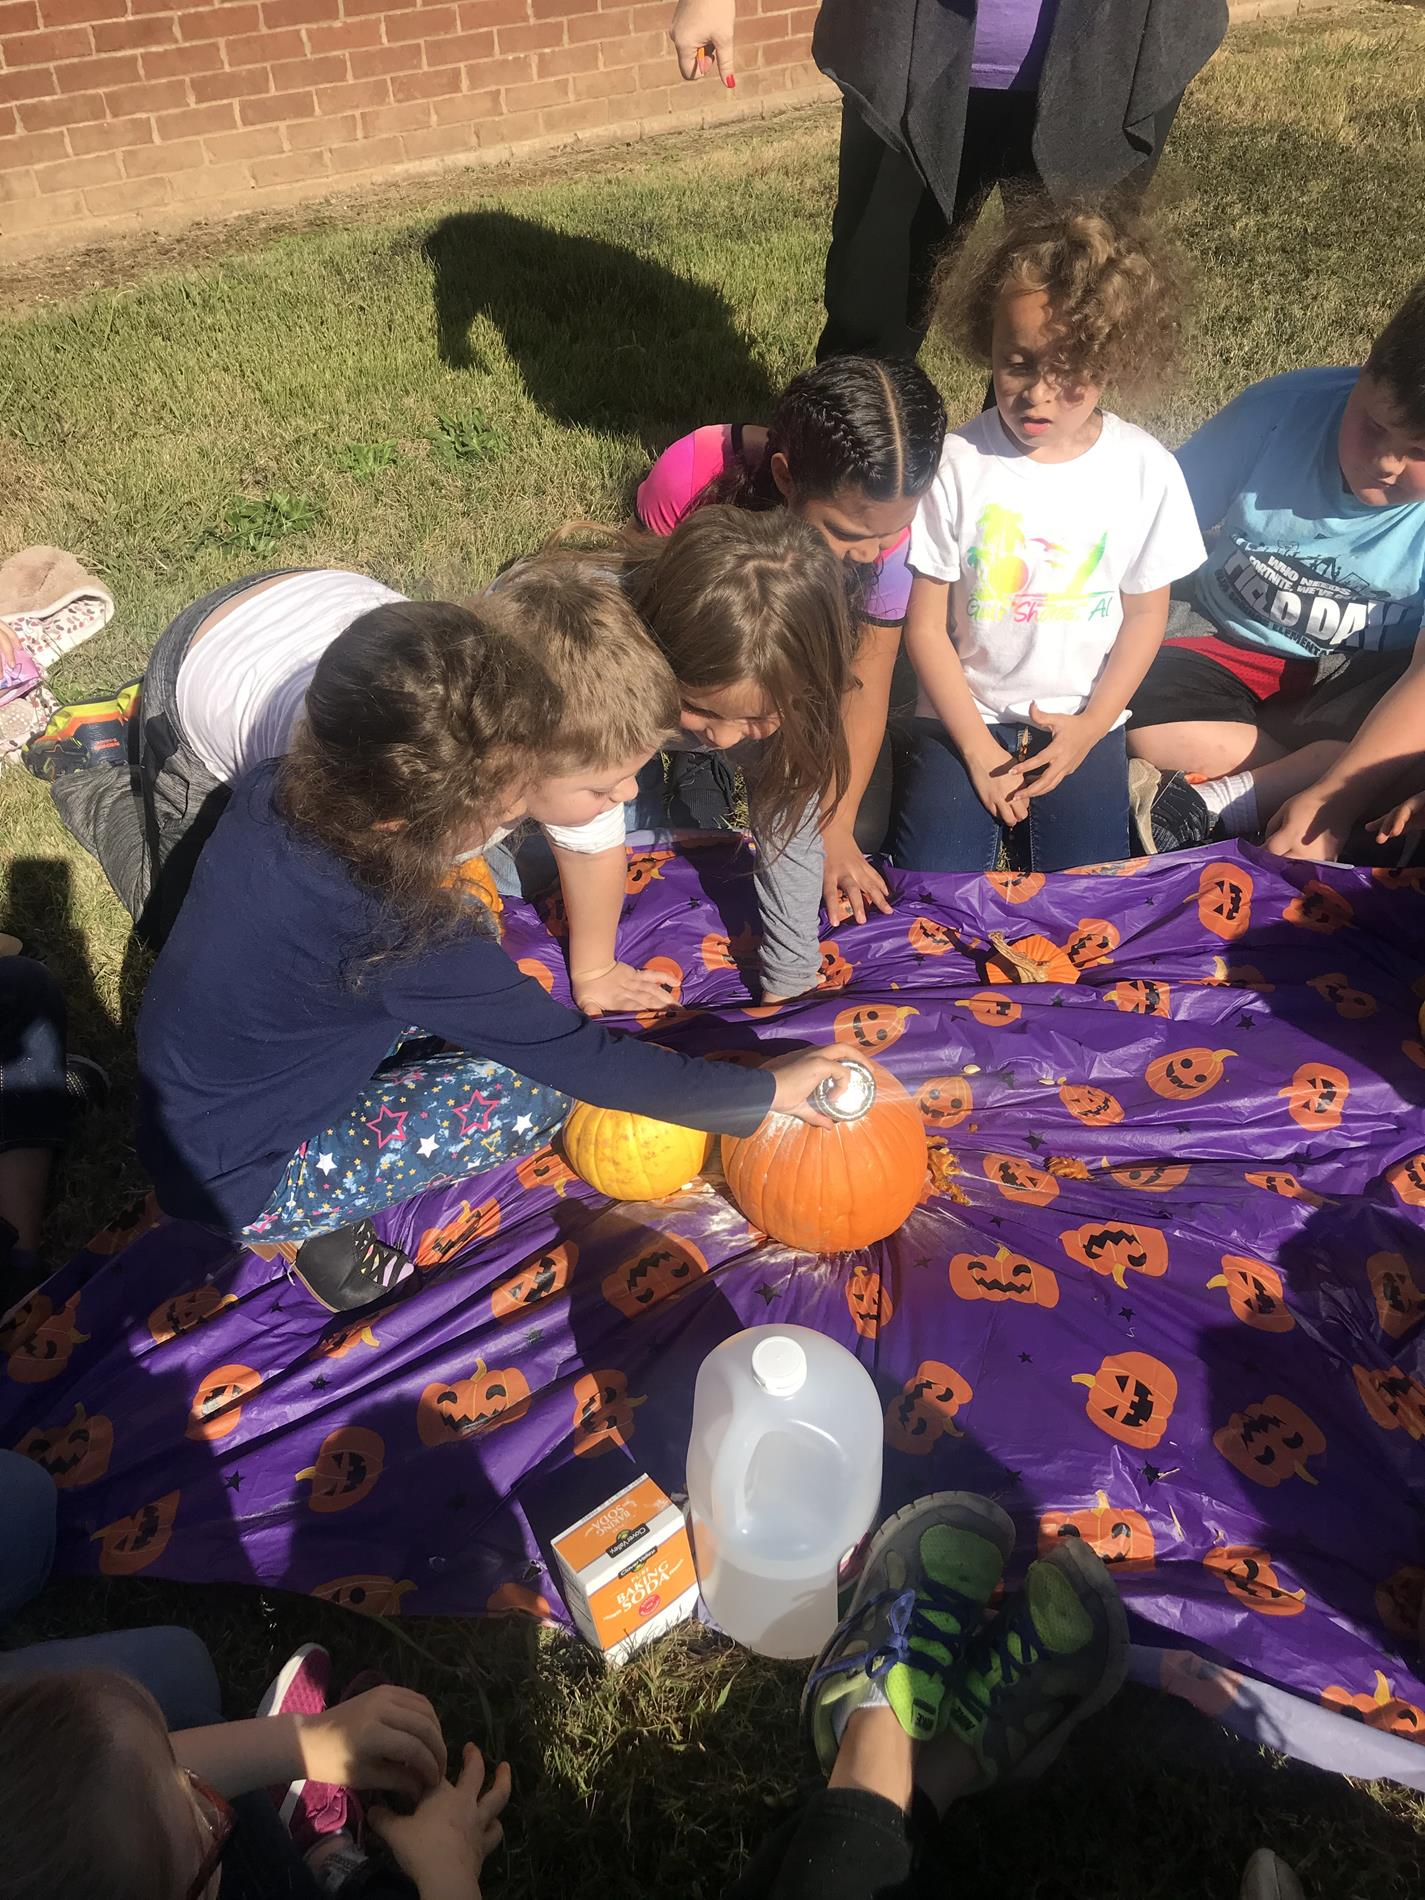 We did a Science Experiment with our pumpkins.